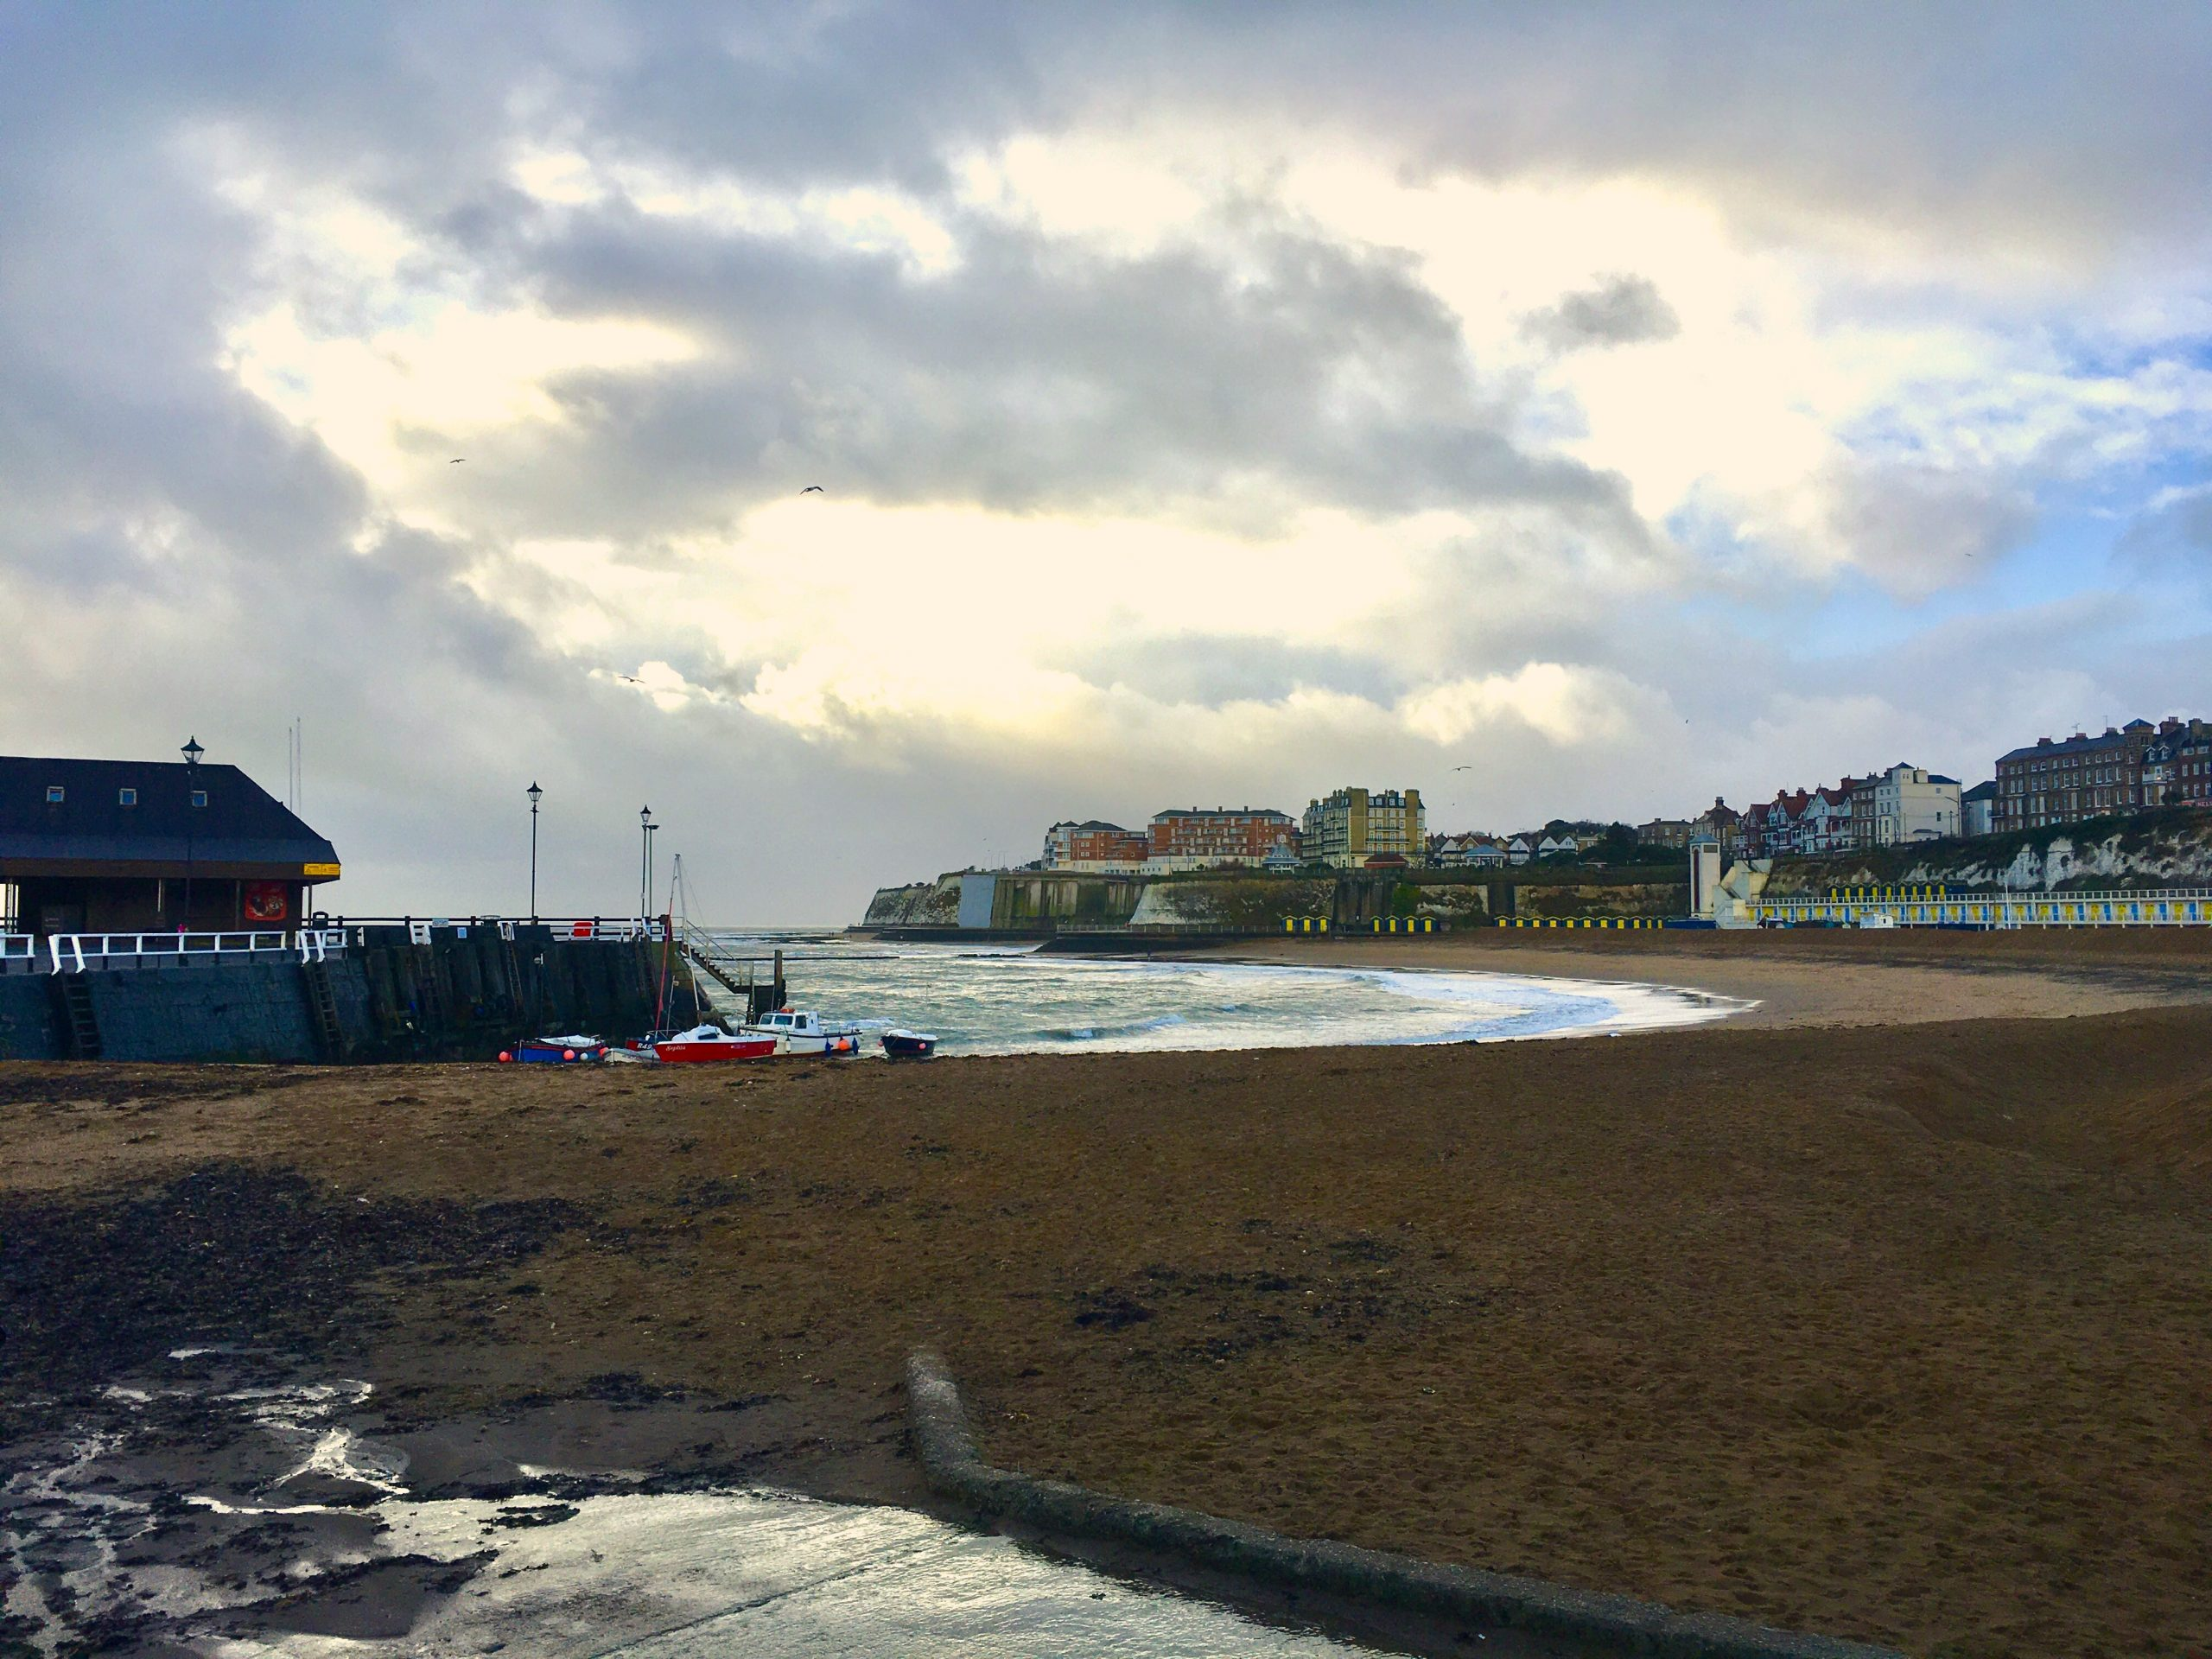 Broadstairs beach